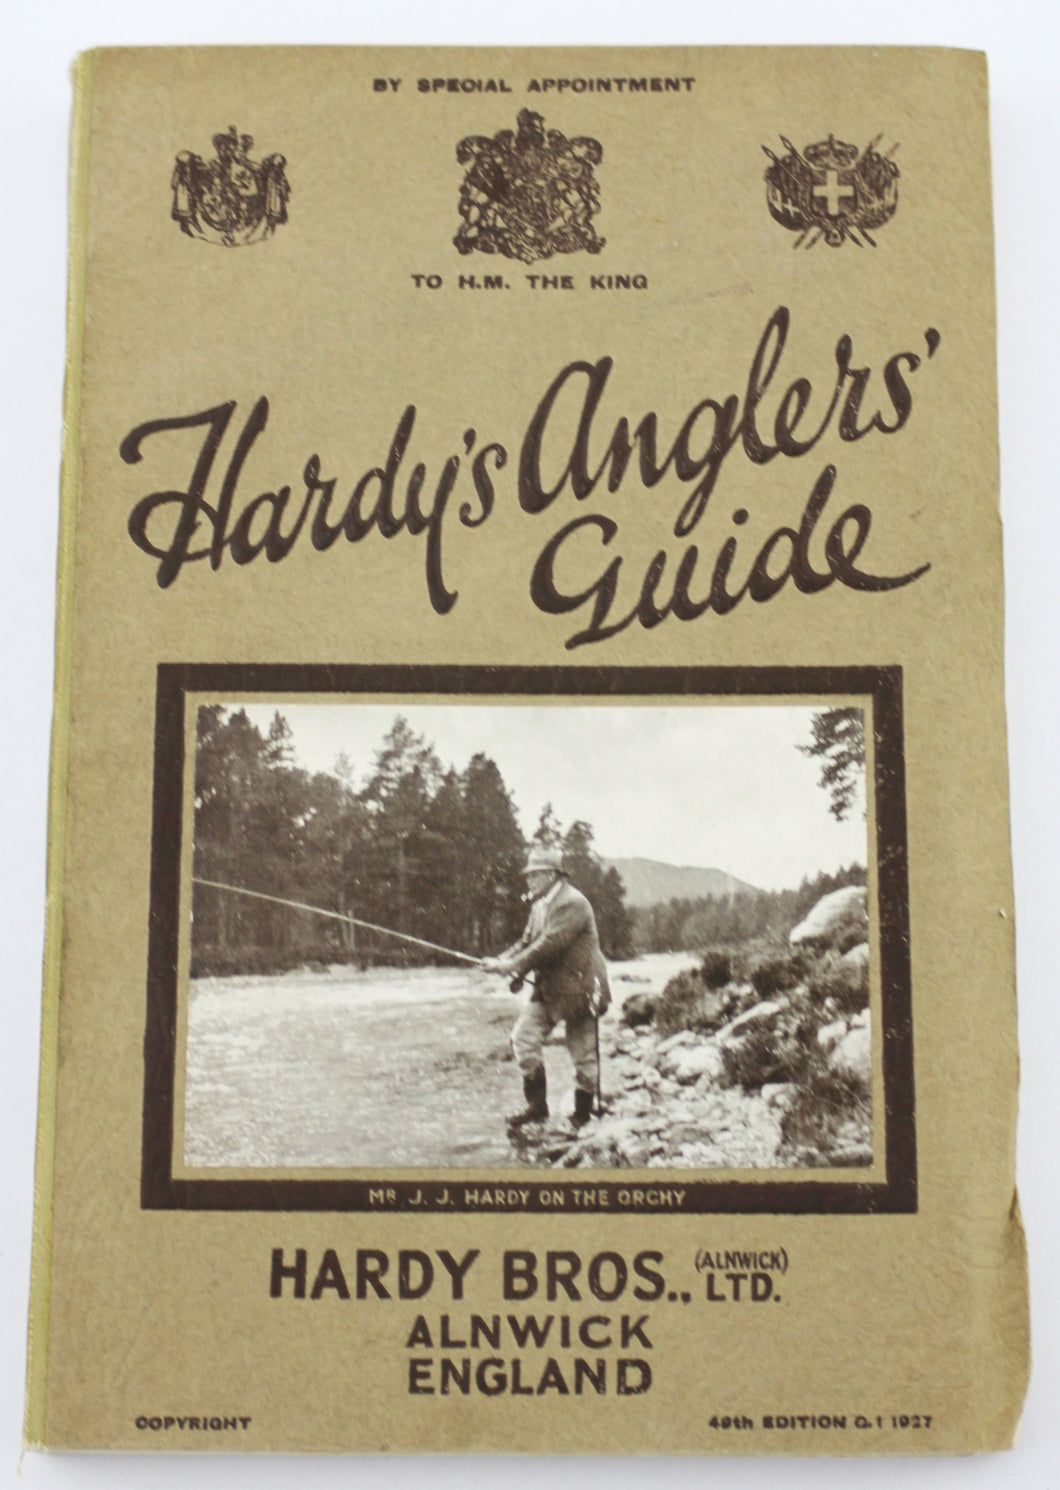 Hardy's Angler's Guide. 1927